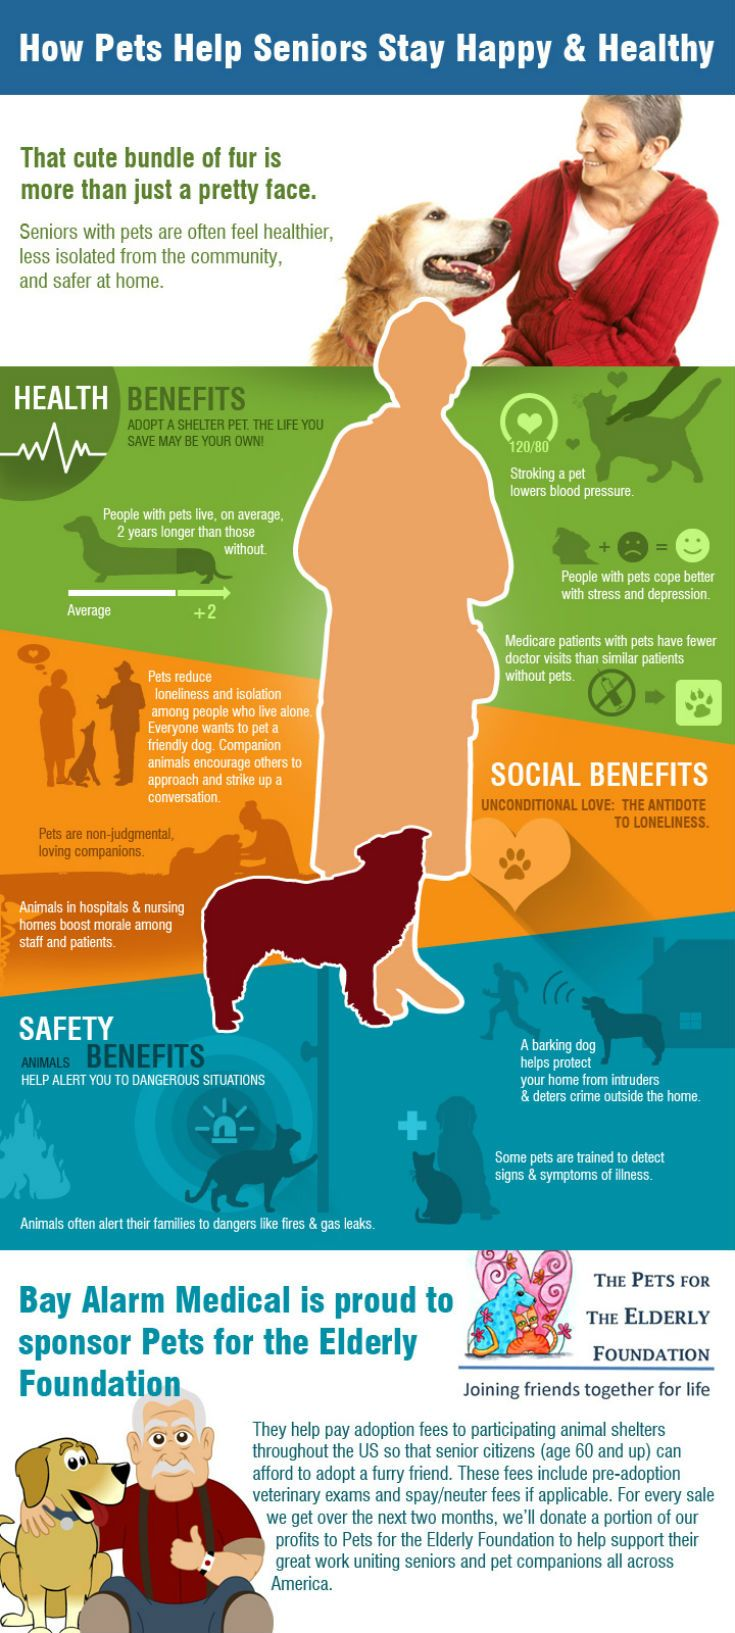 How Pets Help Seniors Stay Happy & Healthy. CLICK through for more health stats! #pets #seniors #health